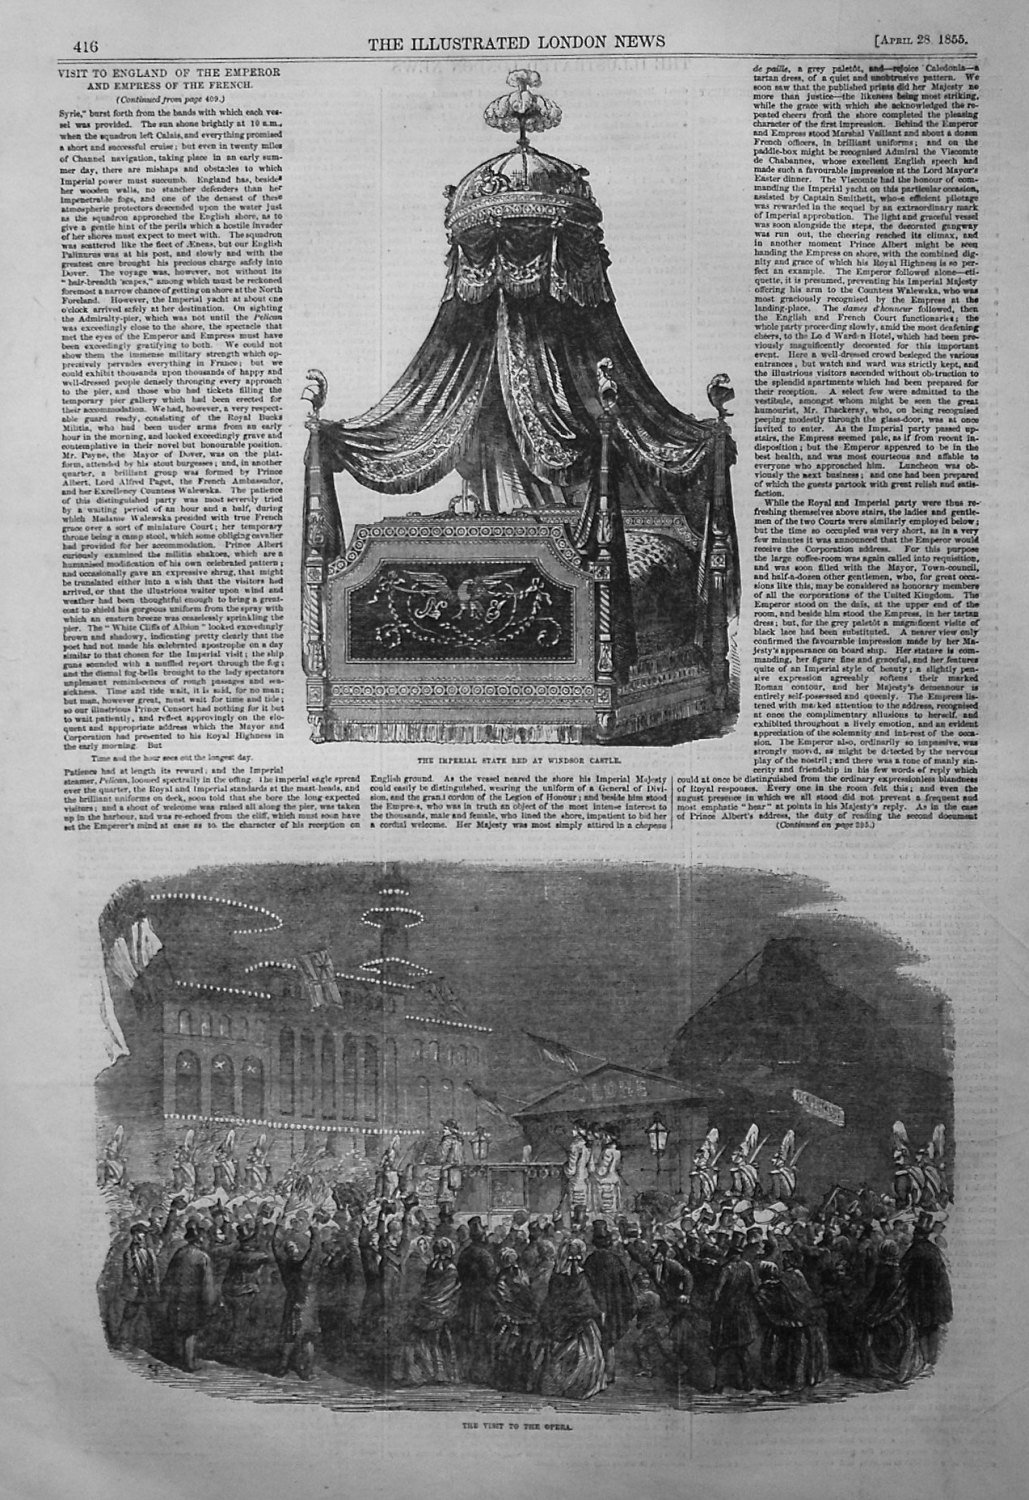 The Imperial State Bed at Windsor Castle. 1855